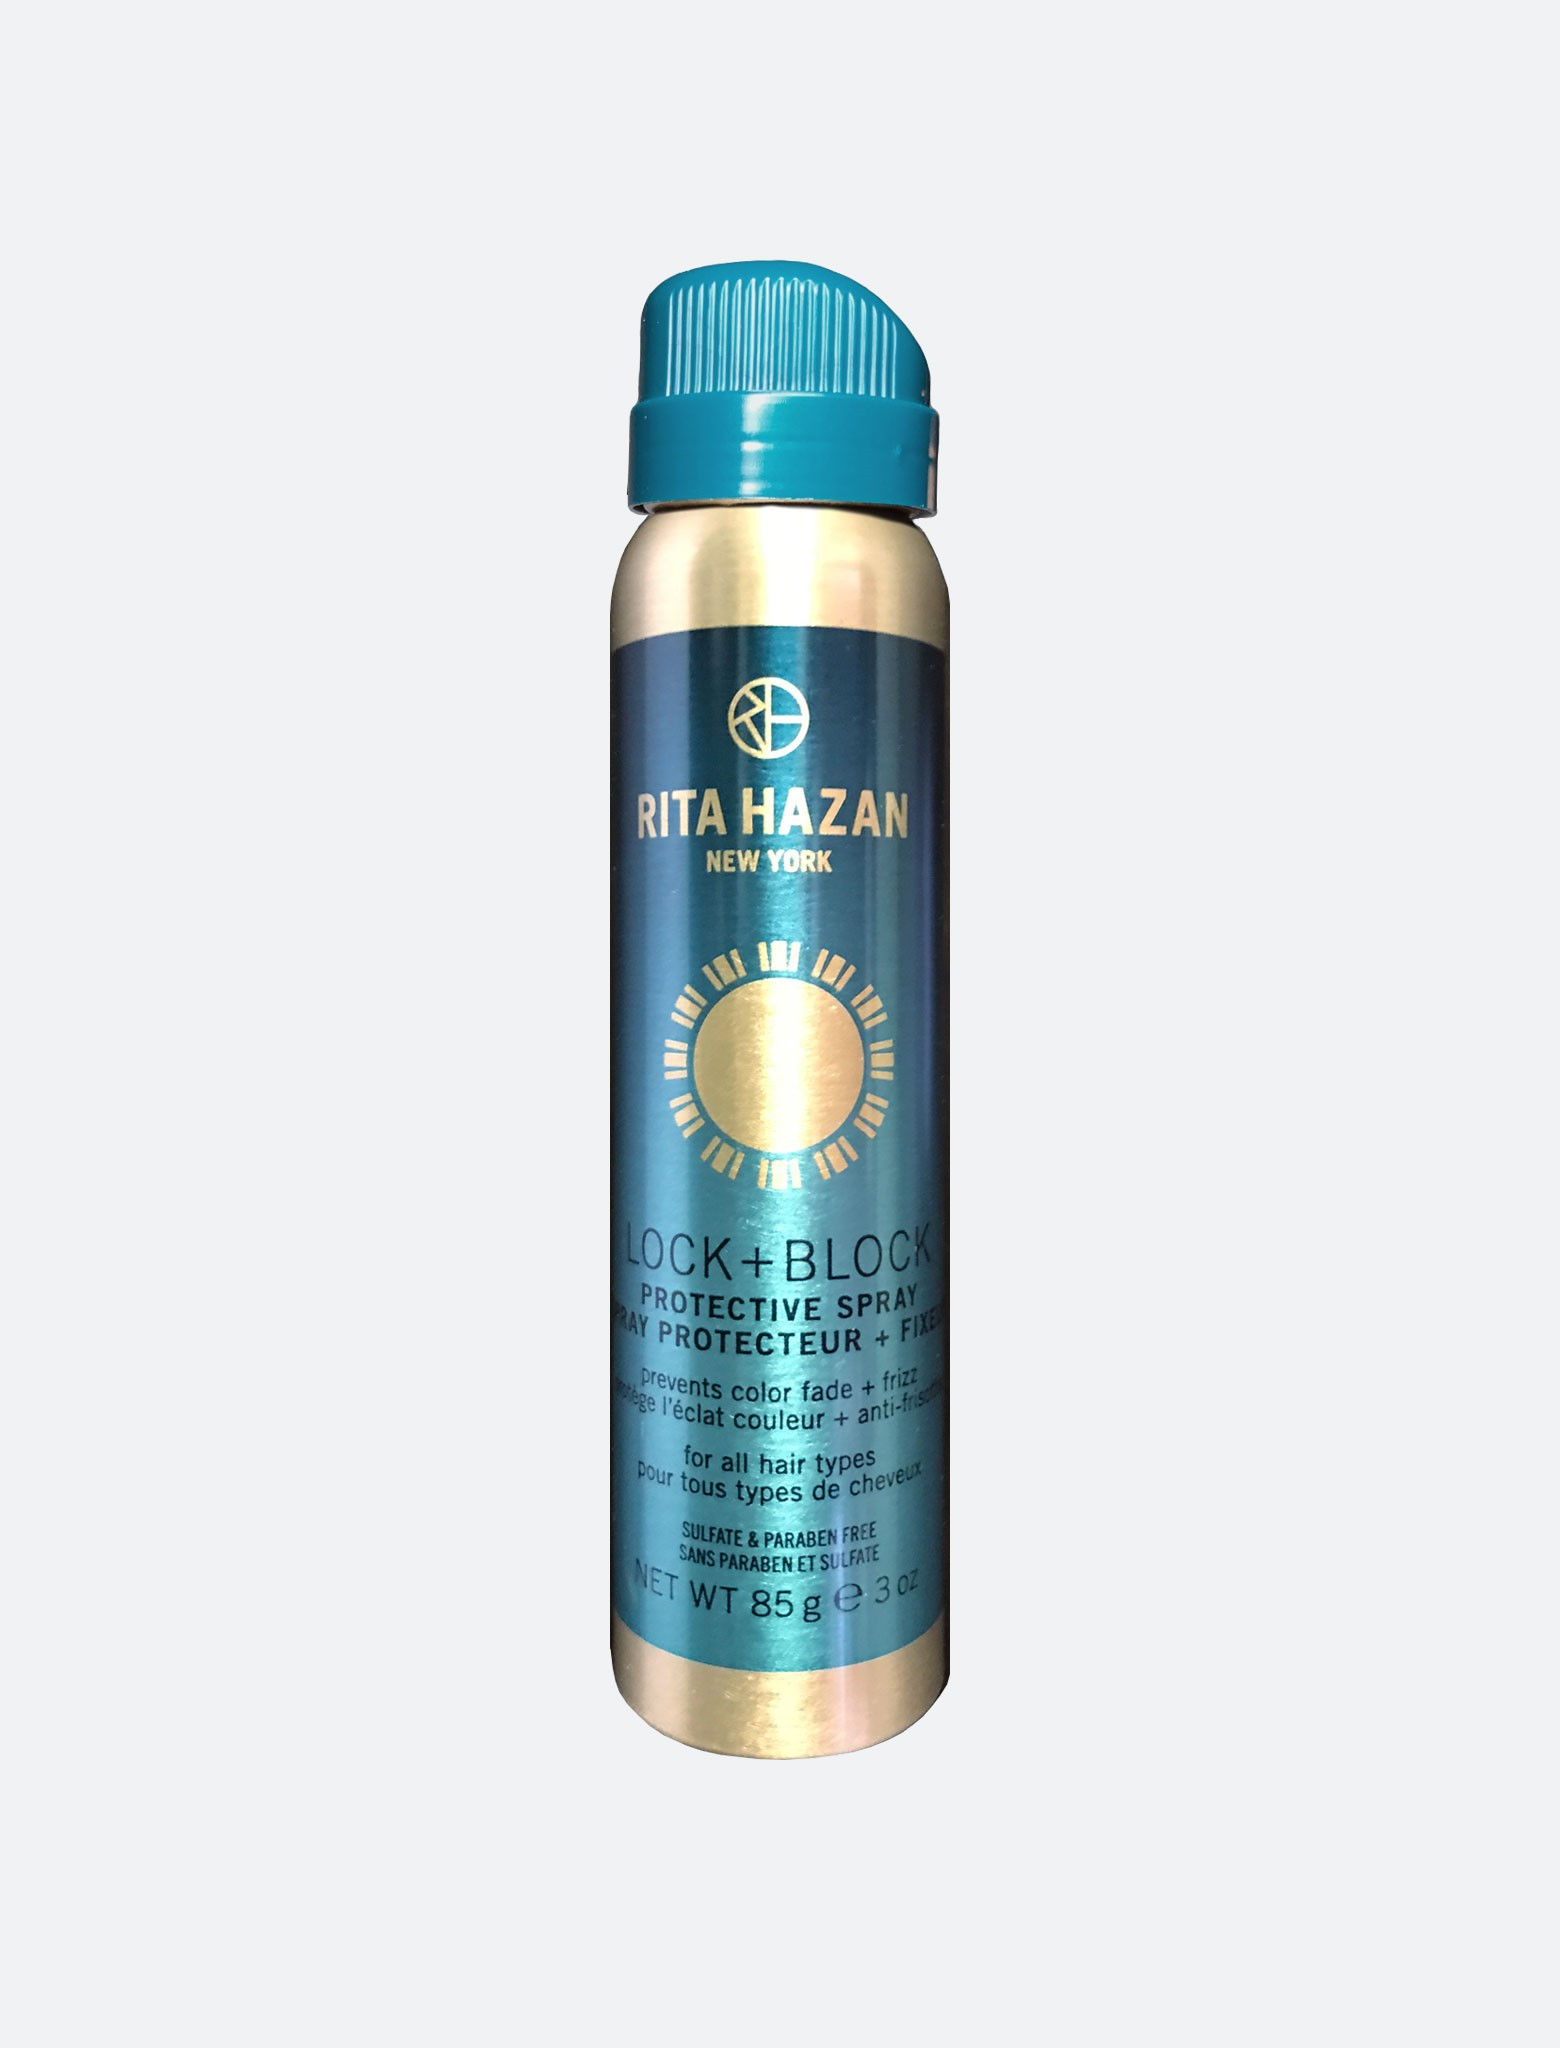 Rita Hazan, one of the best multitasking beauty products